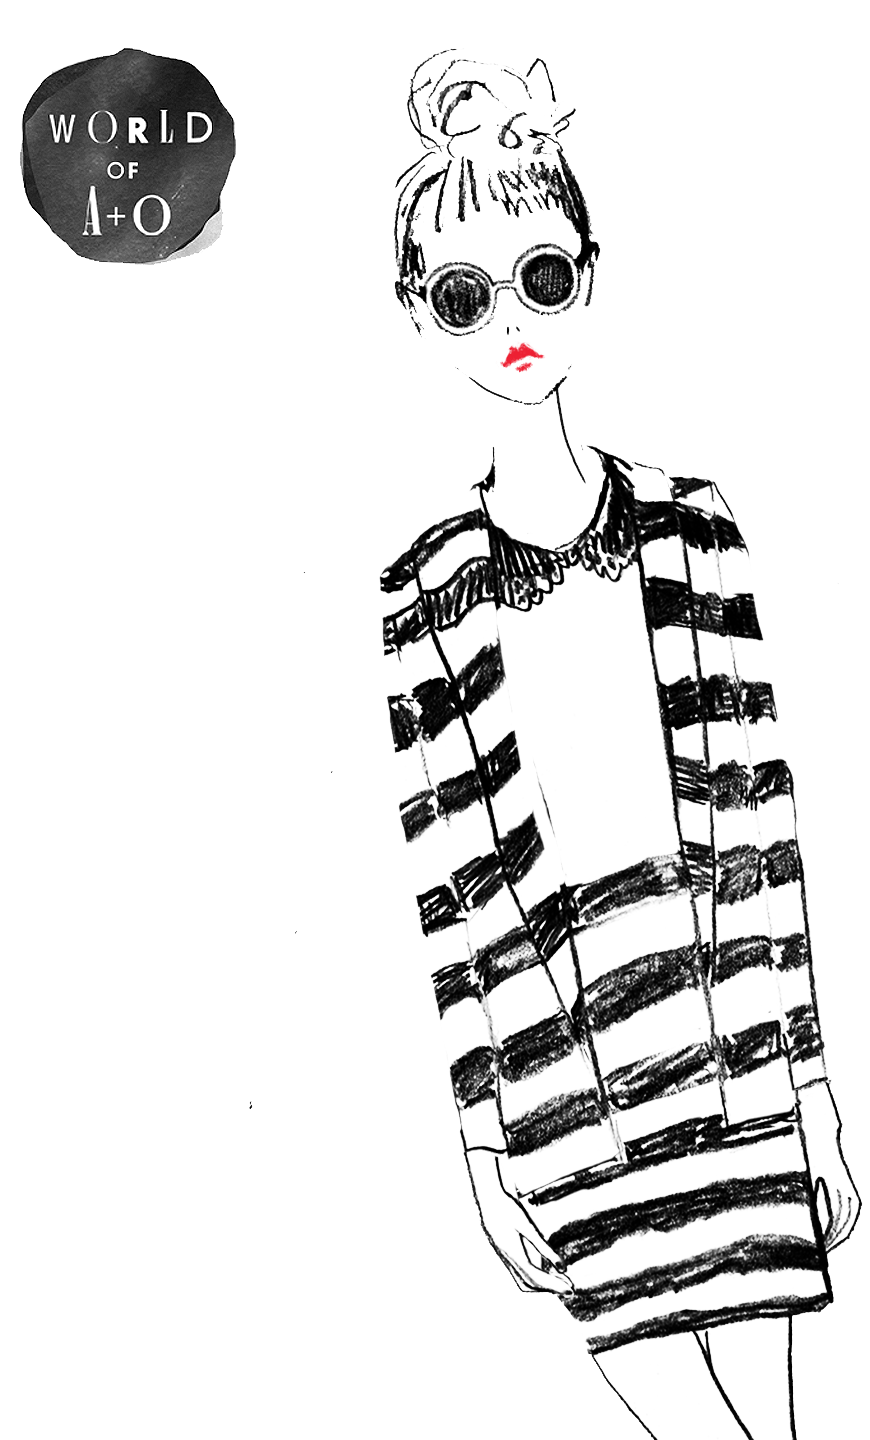 Noir drawing mademoiselle. Stripes striped to perfection